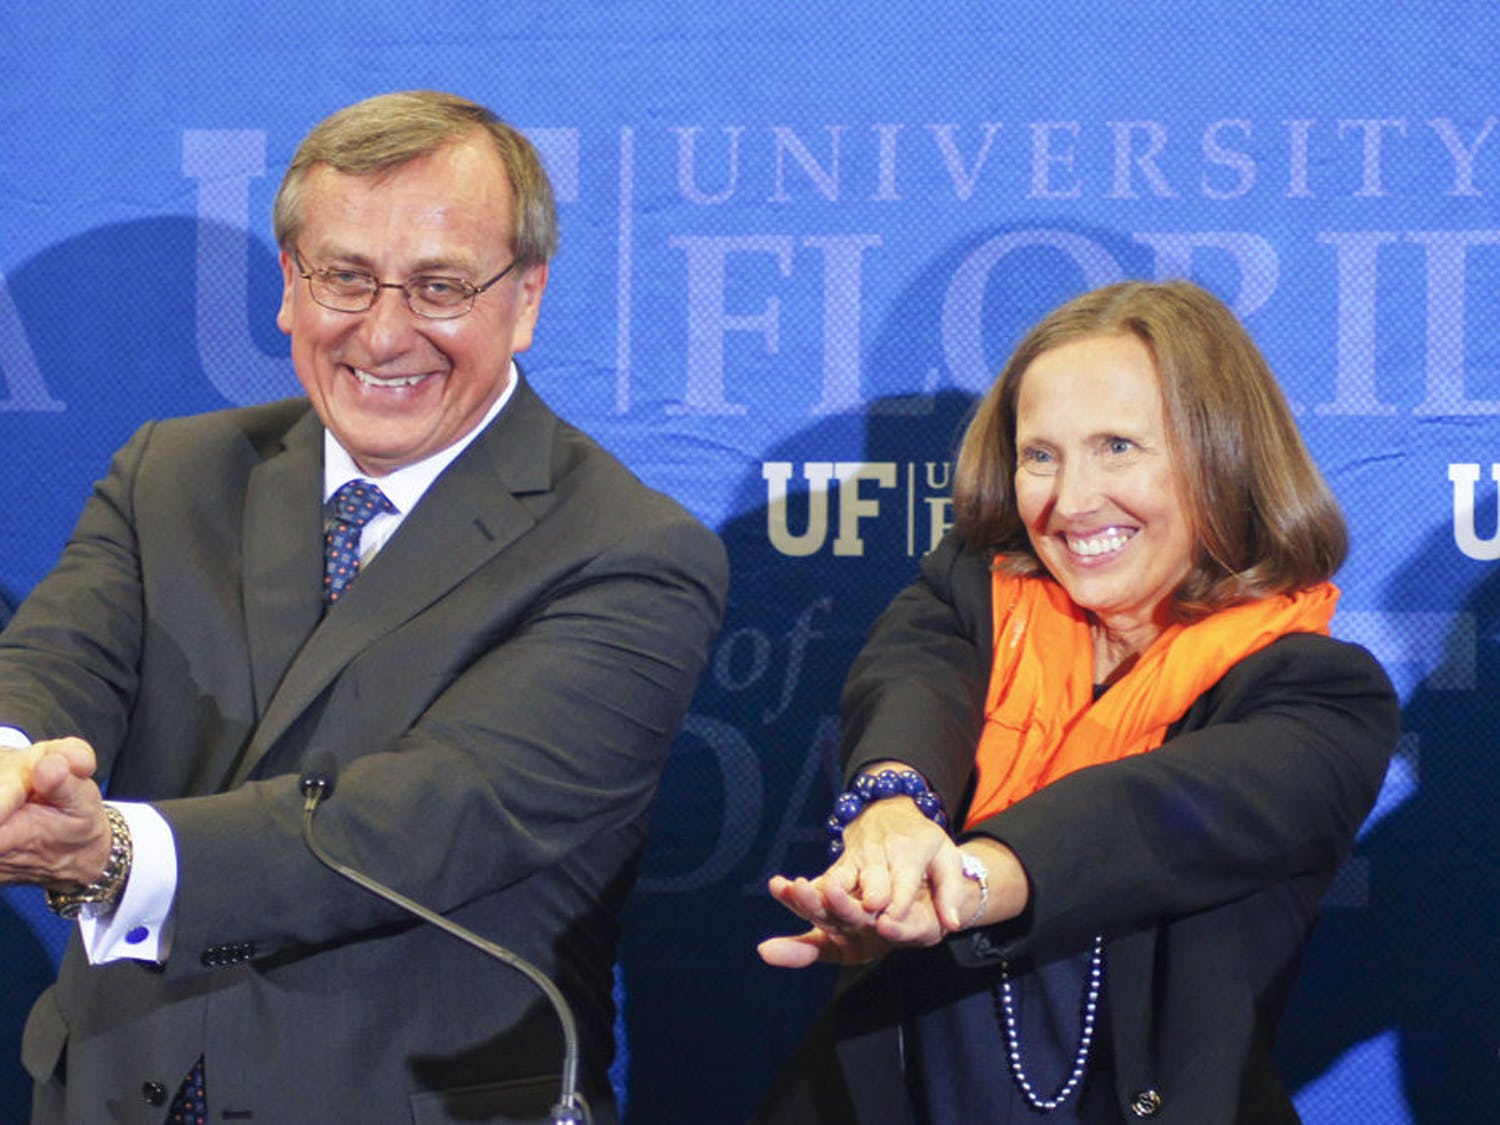 Kent Fuchs and his wife, Linda, Gator Chomp after the Cornell University provost was named UF's 12th president at Emerson Alumni Hall on Wednesday.